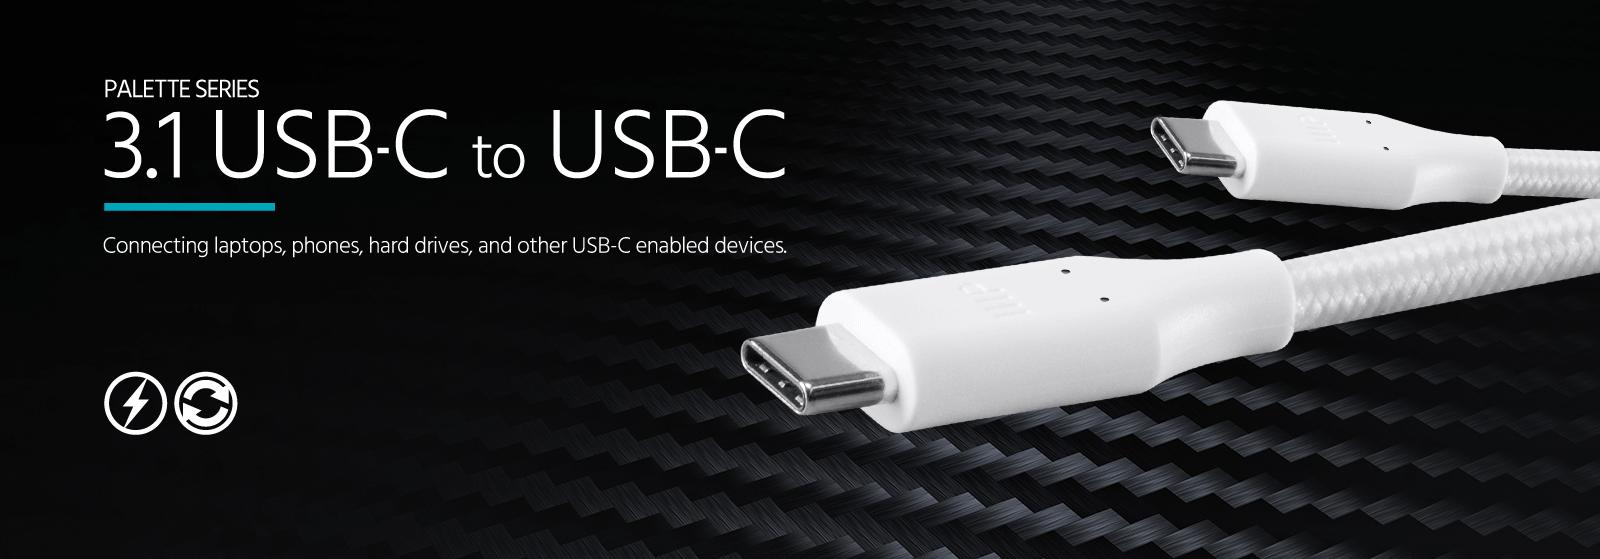 3.1 USB-C to USB-C with Power Delivery